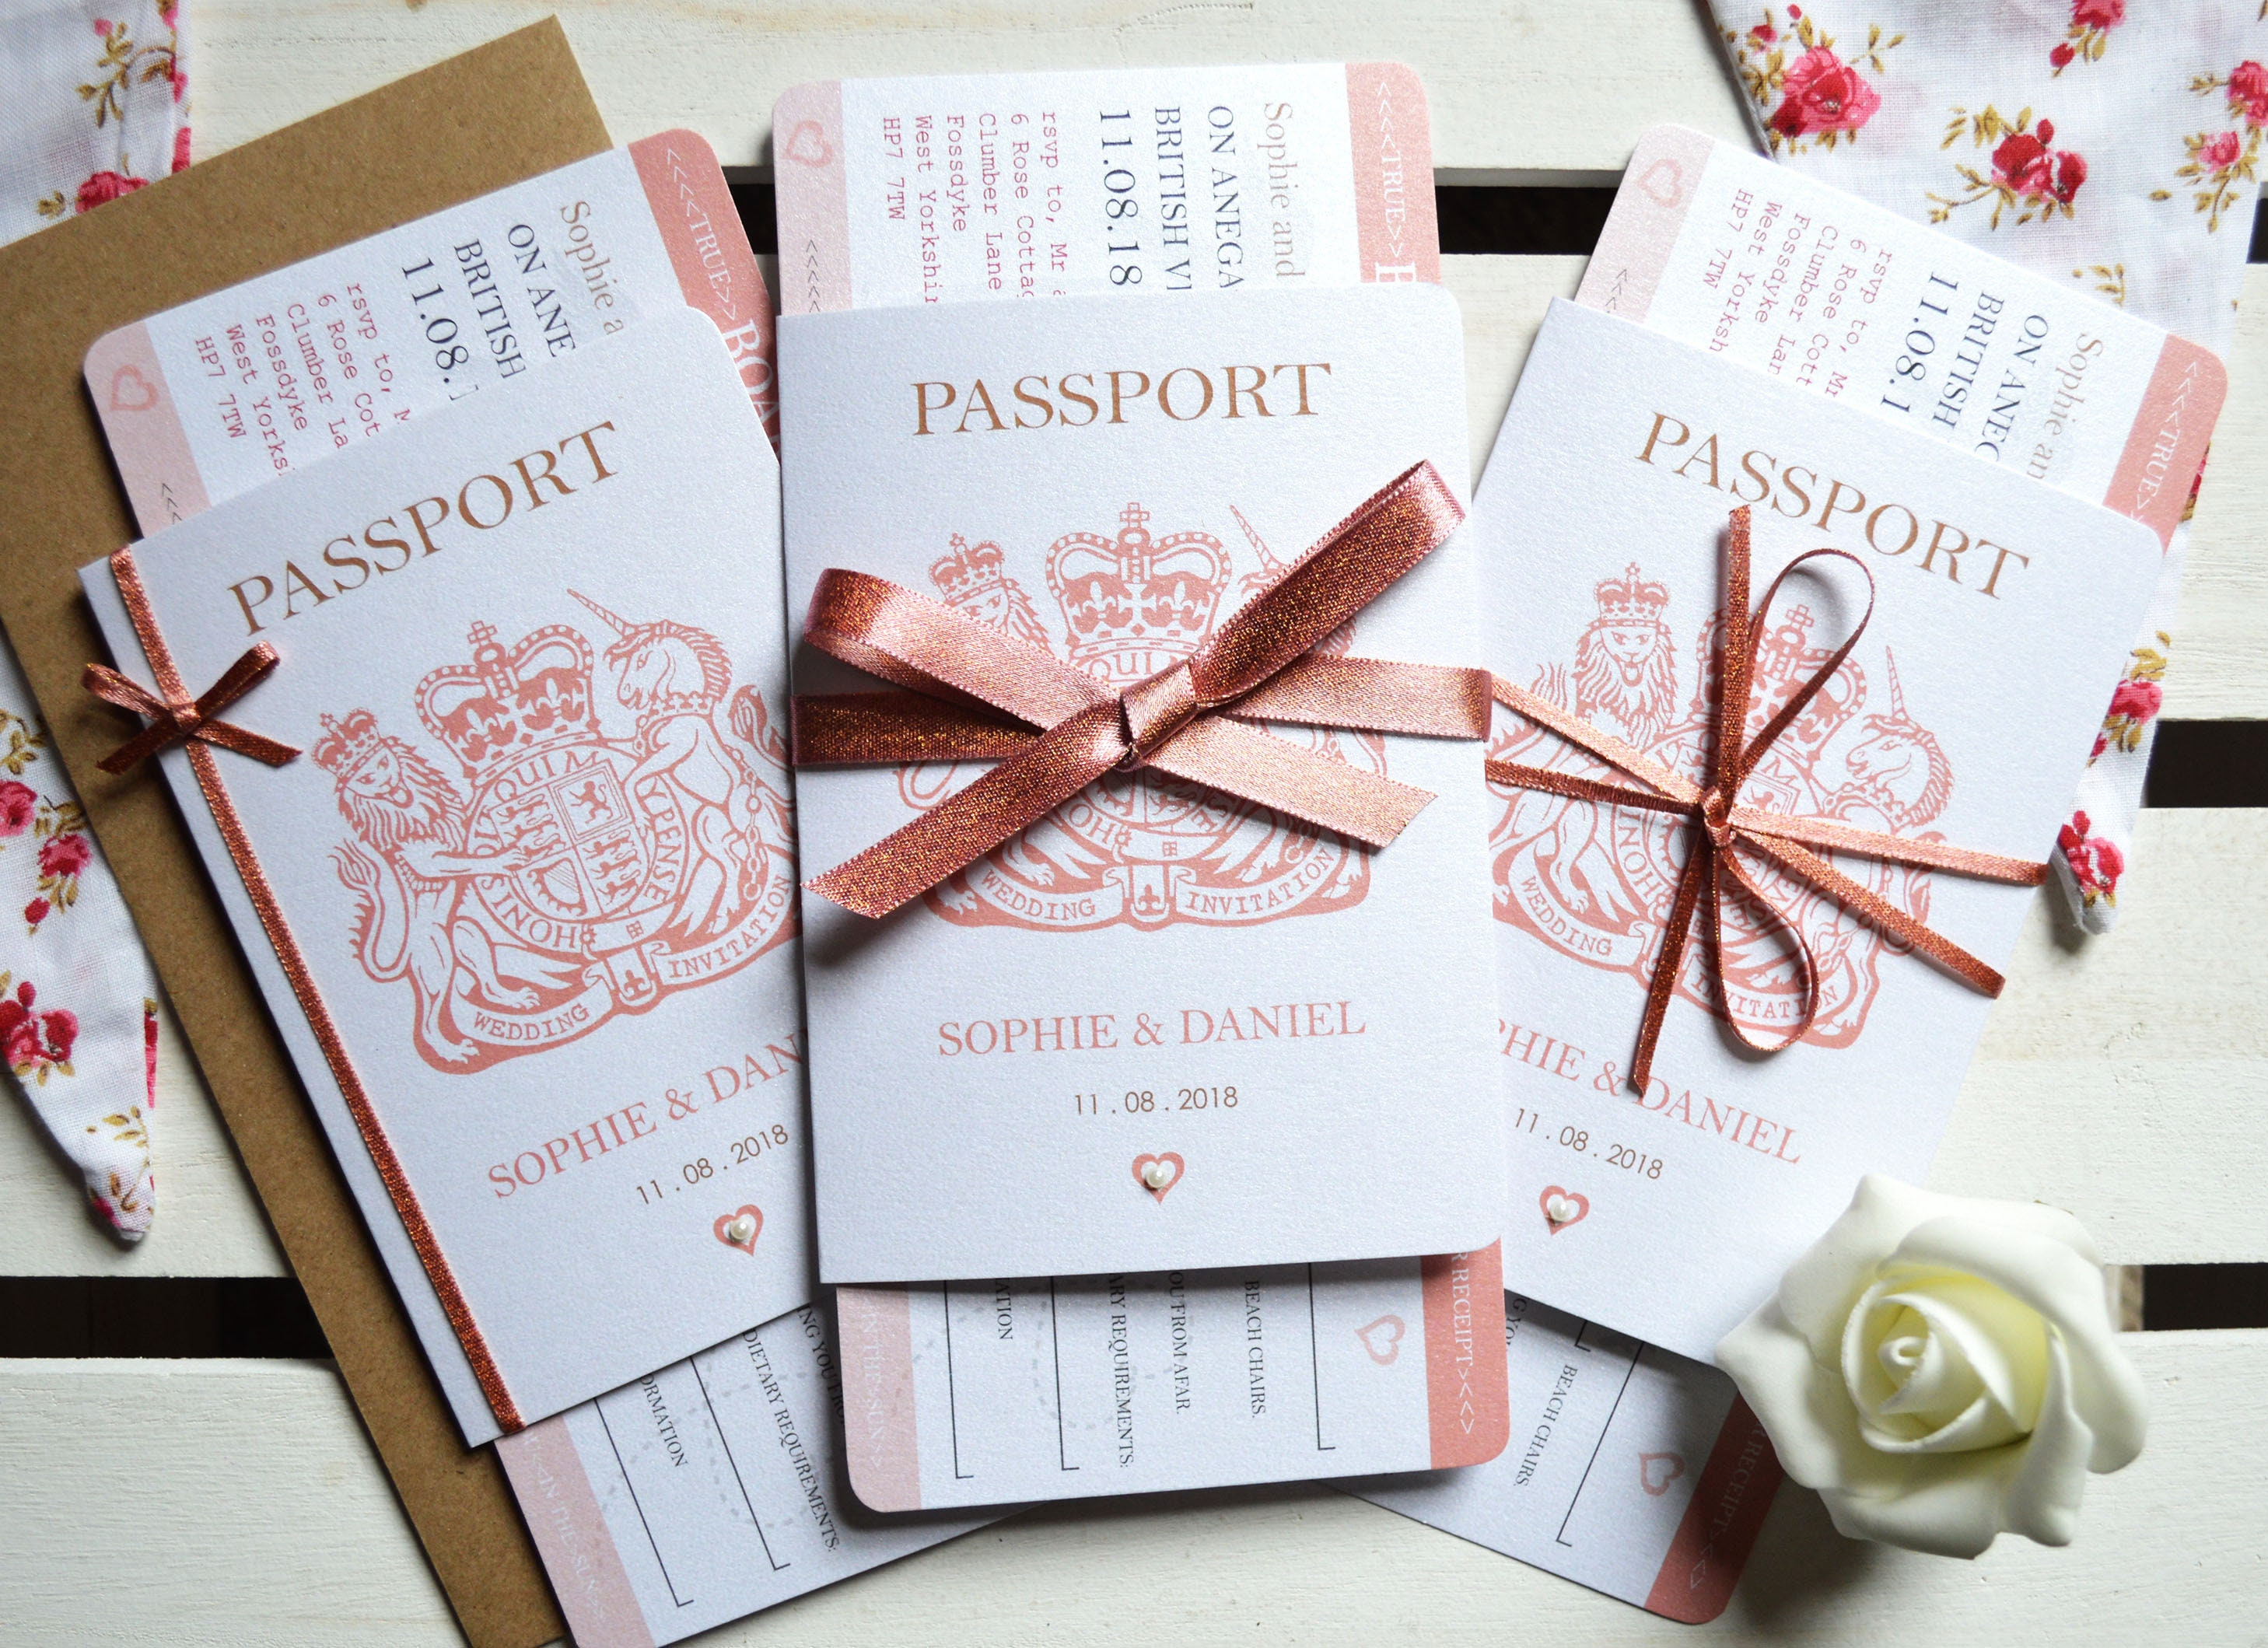 Passport Wedding Invitations Burge Bjgmc Tb Org